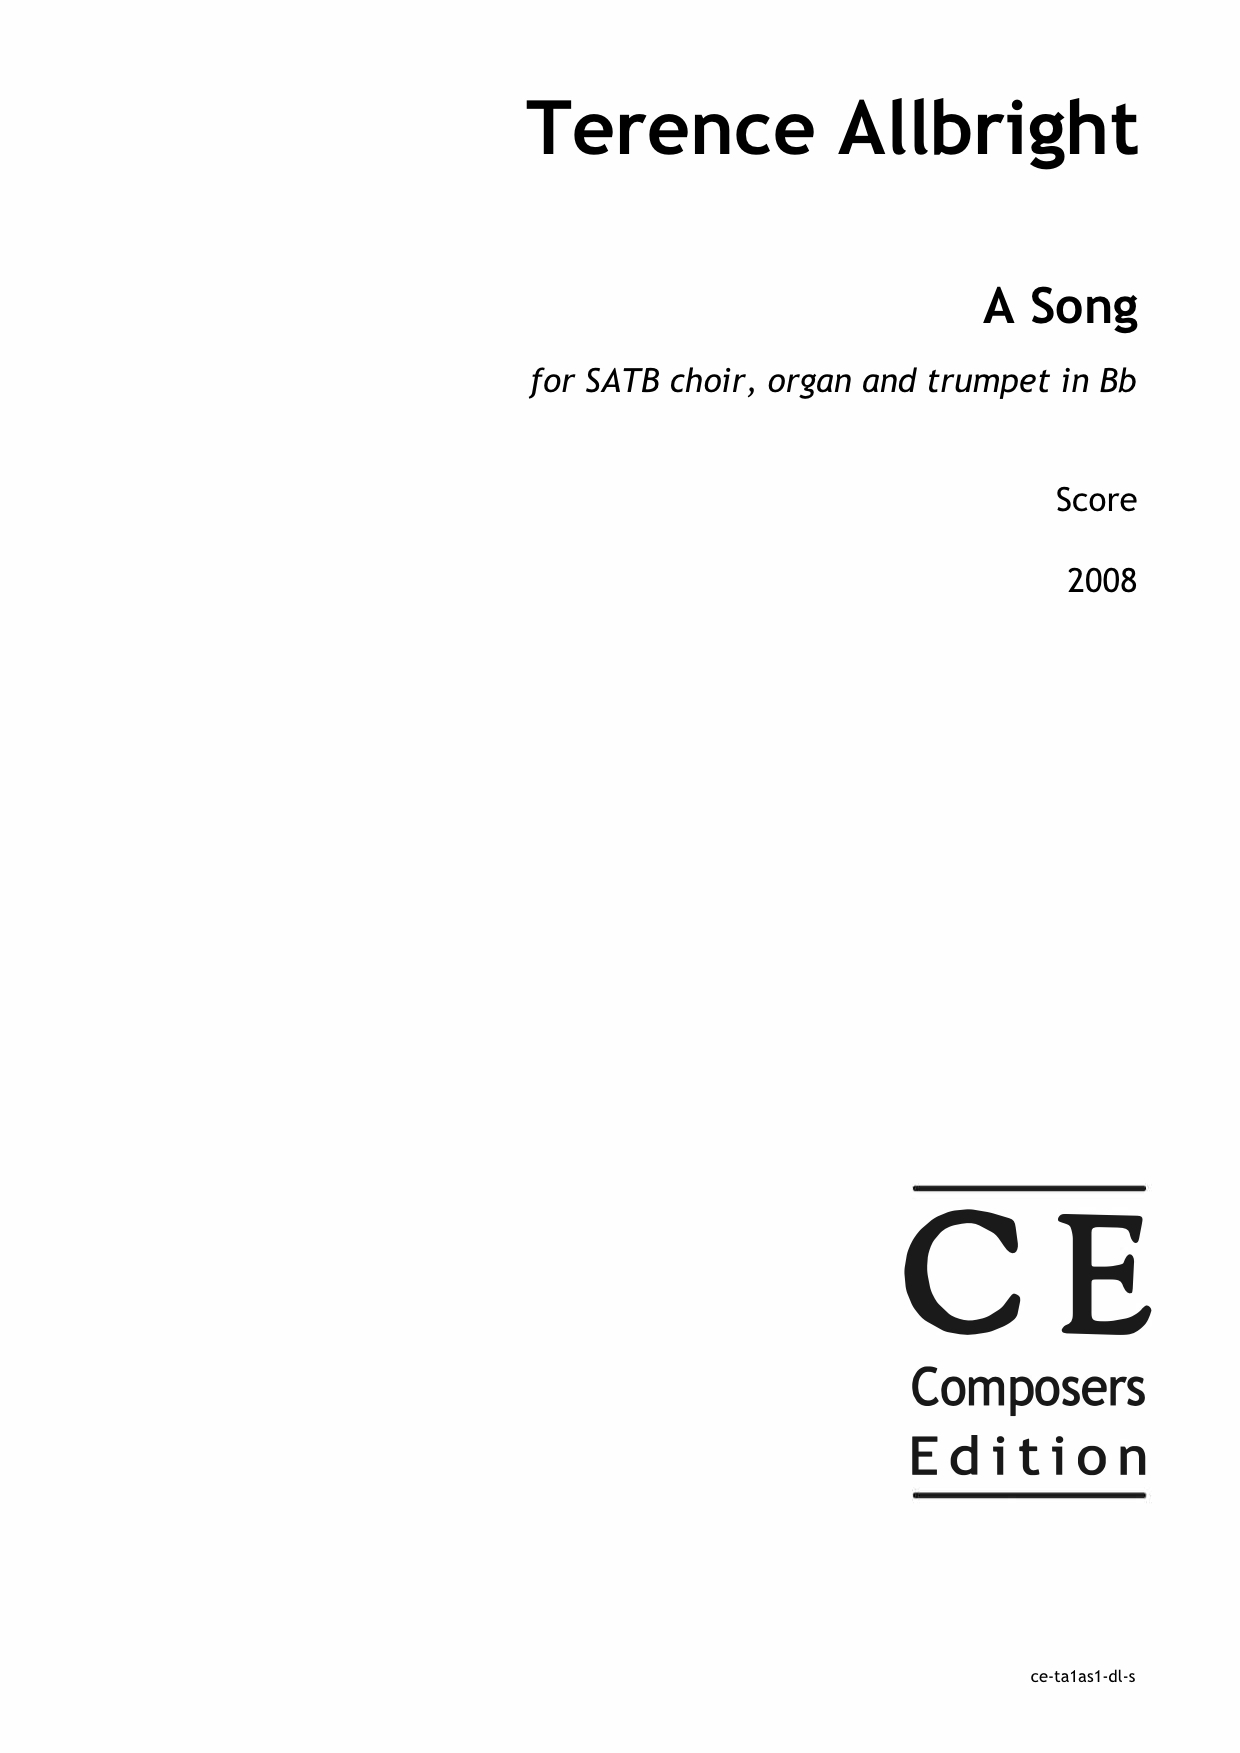 Terence Allbright: A Song for SATB choir, organ and trumpet in Bb